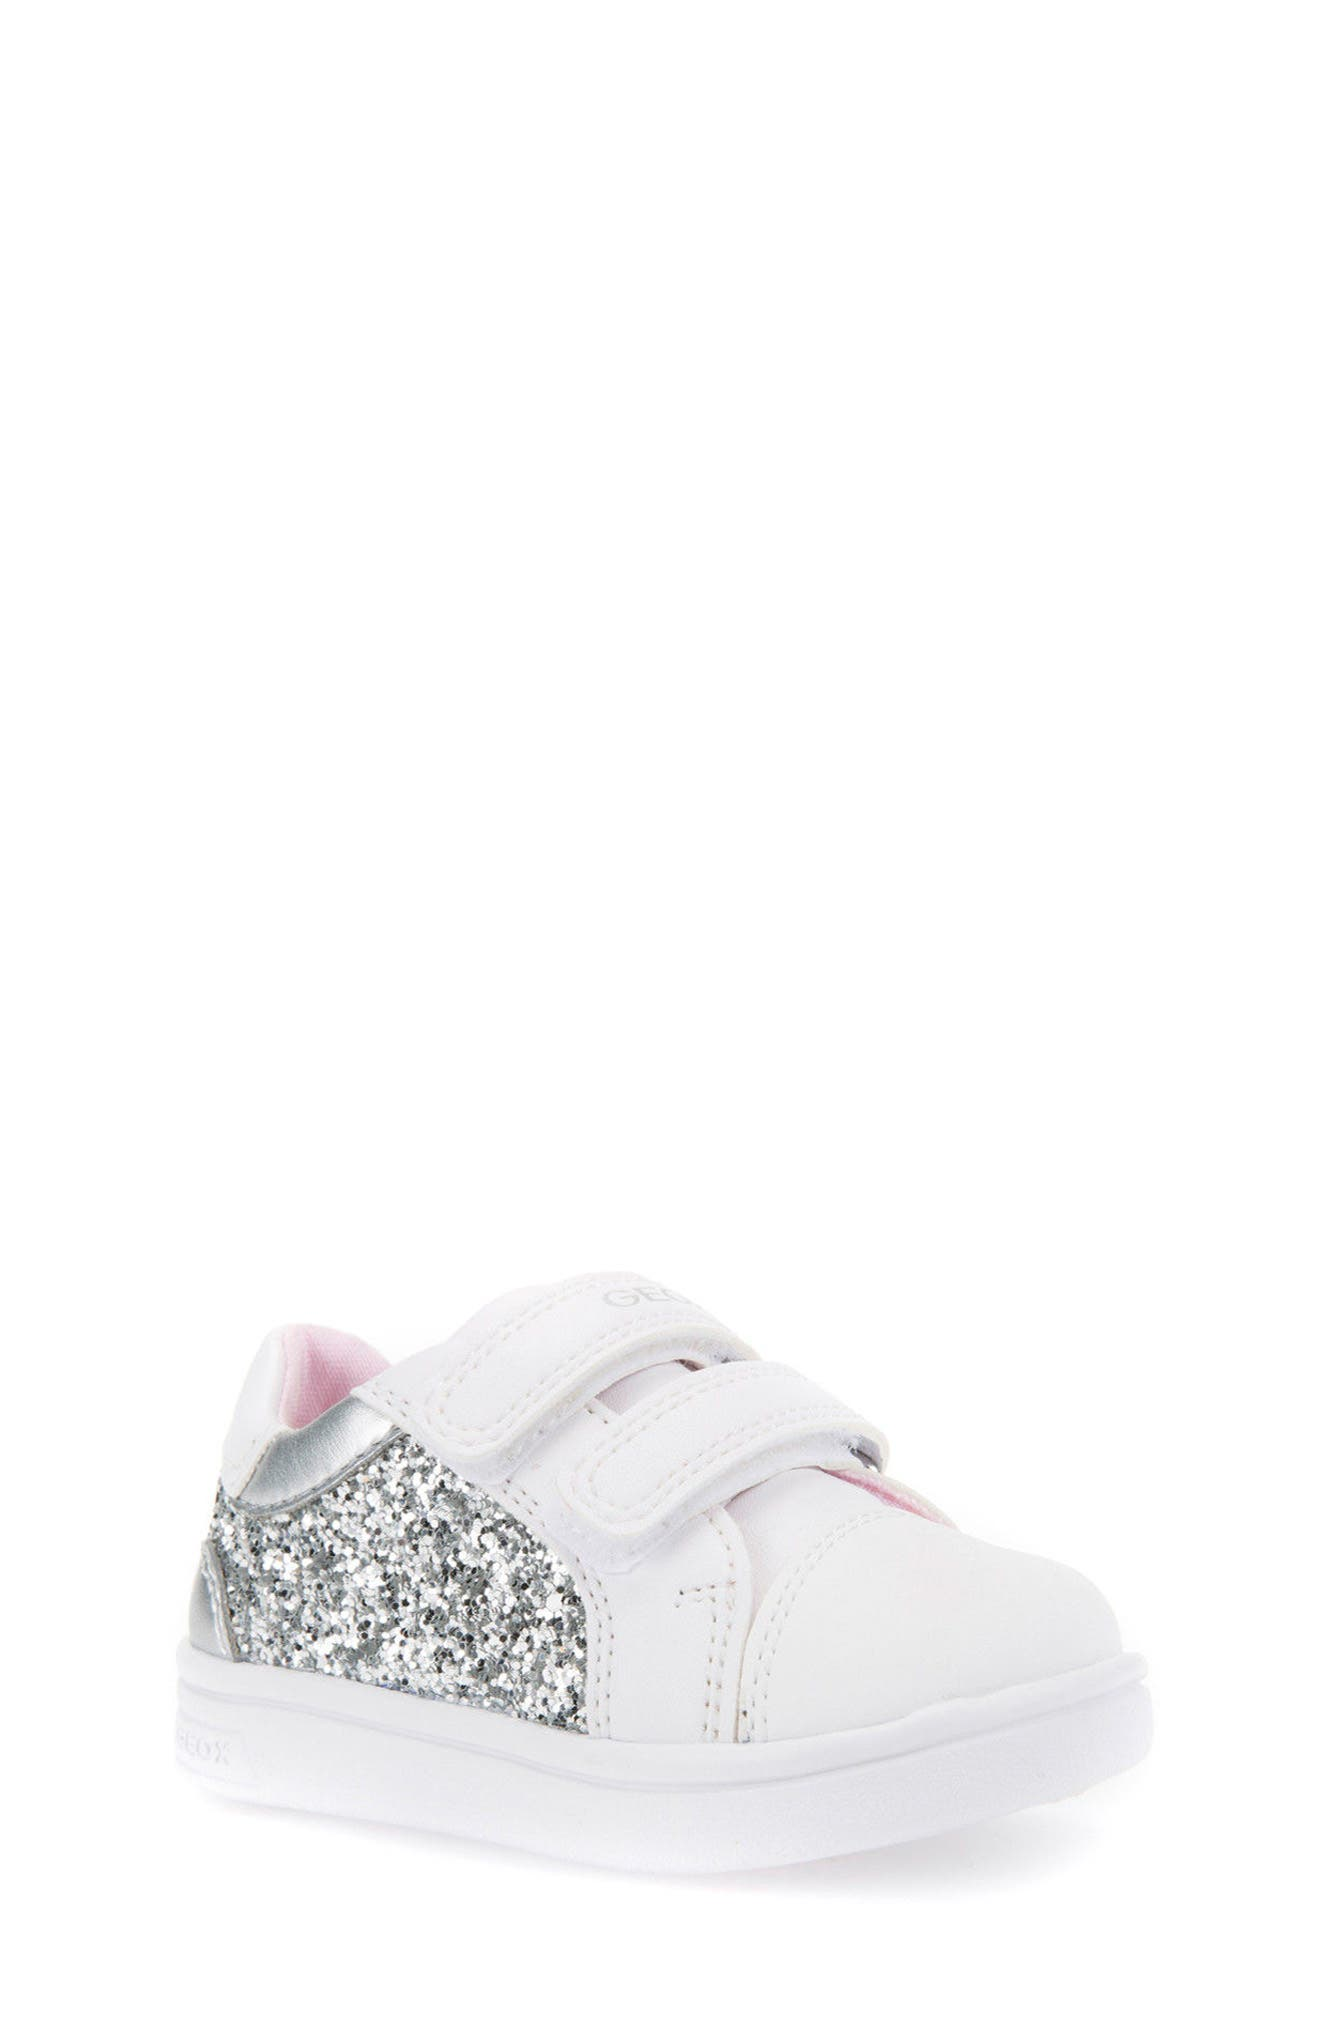 GEOX,                             DJ Rock Glitter Low Top Sneaker,                             Main thumbnail 1, color,                             040